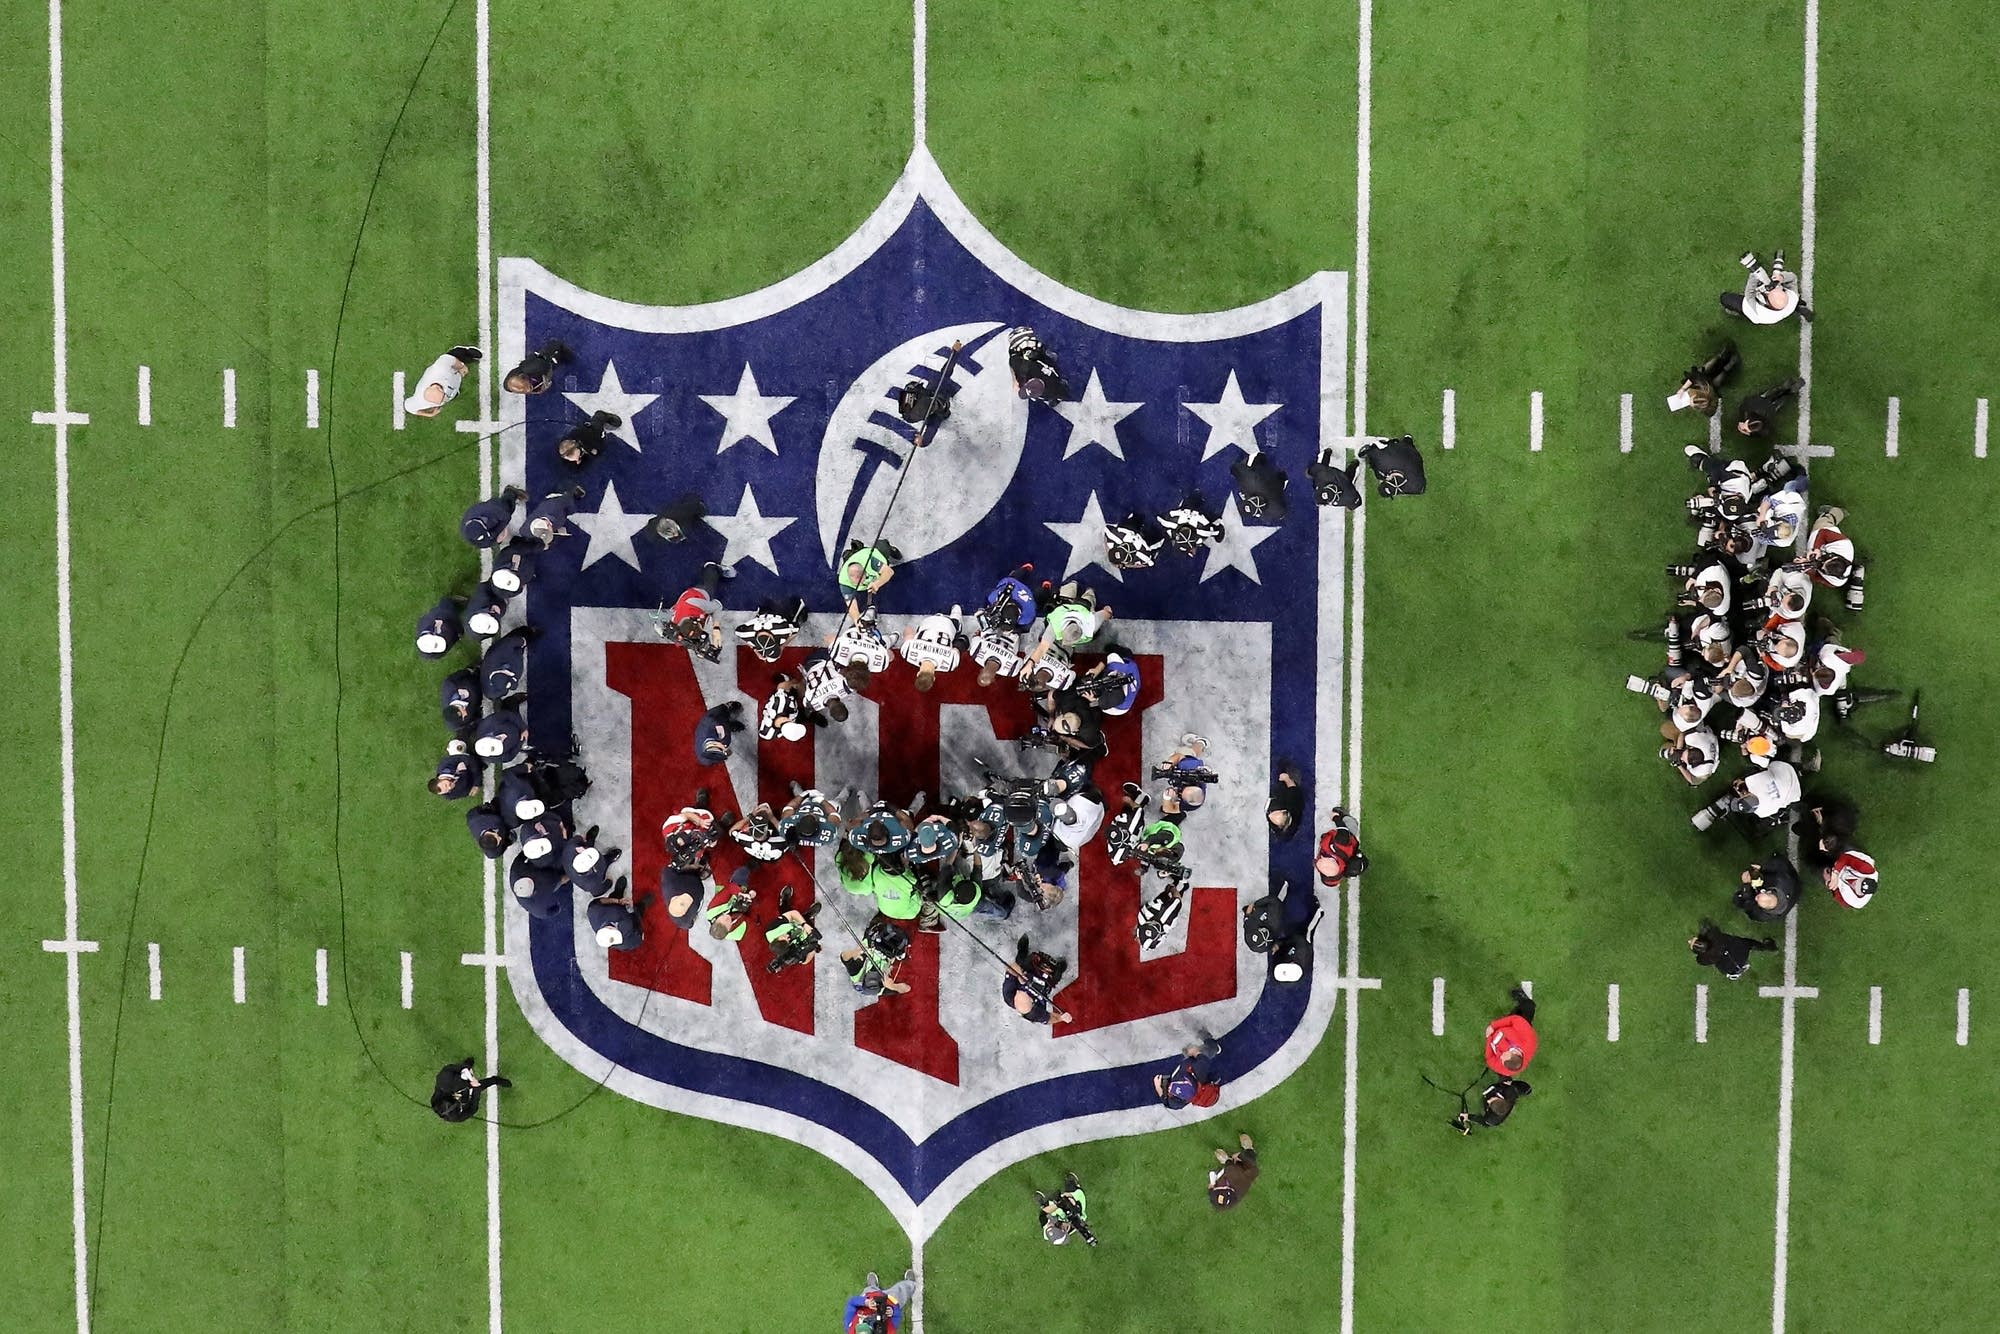 A view of the coin toss prior to Super Bowl LII.